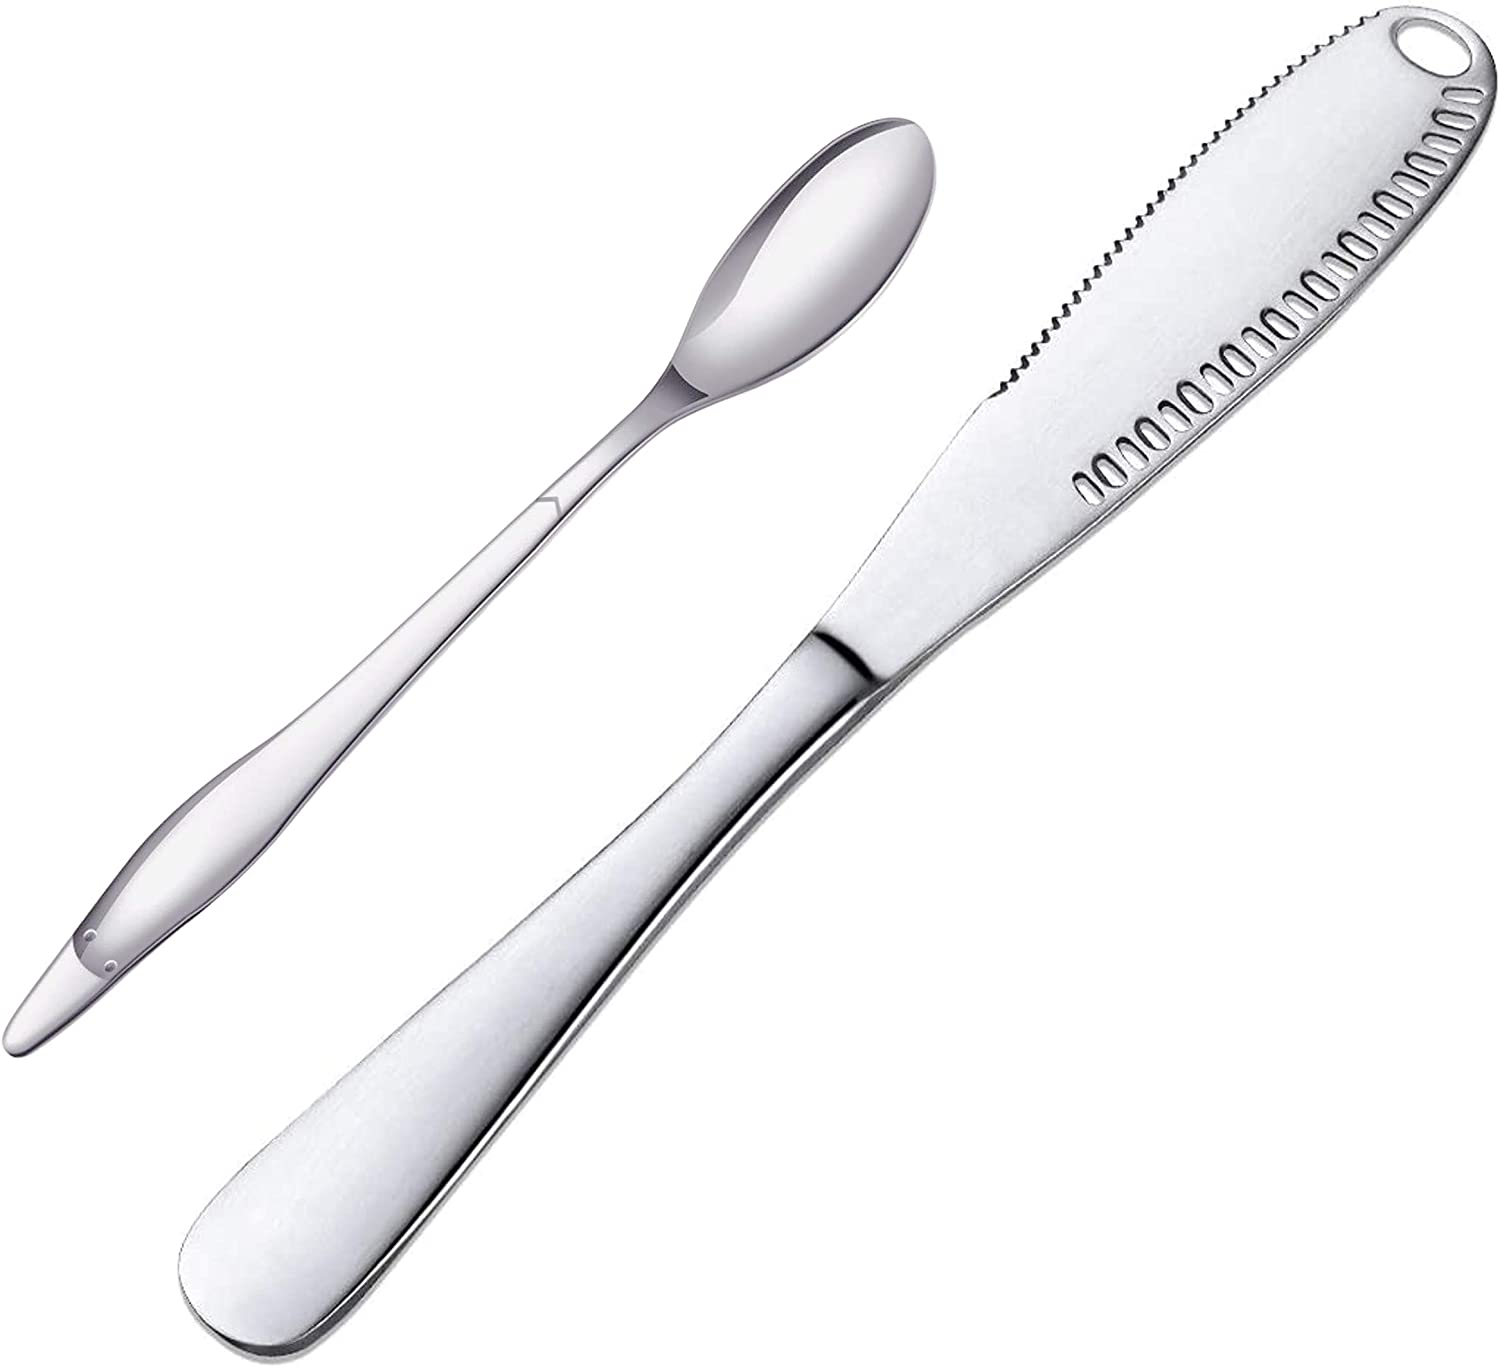 Spreader Knife Butter Multiuse New sales Steel Stainless with Portland Mall Se